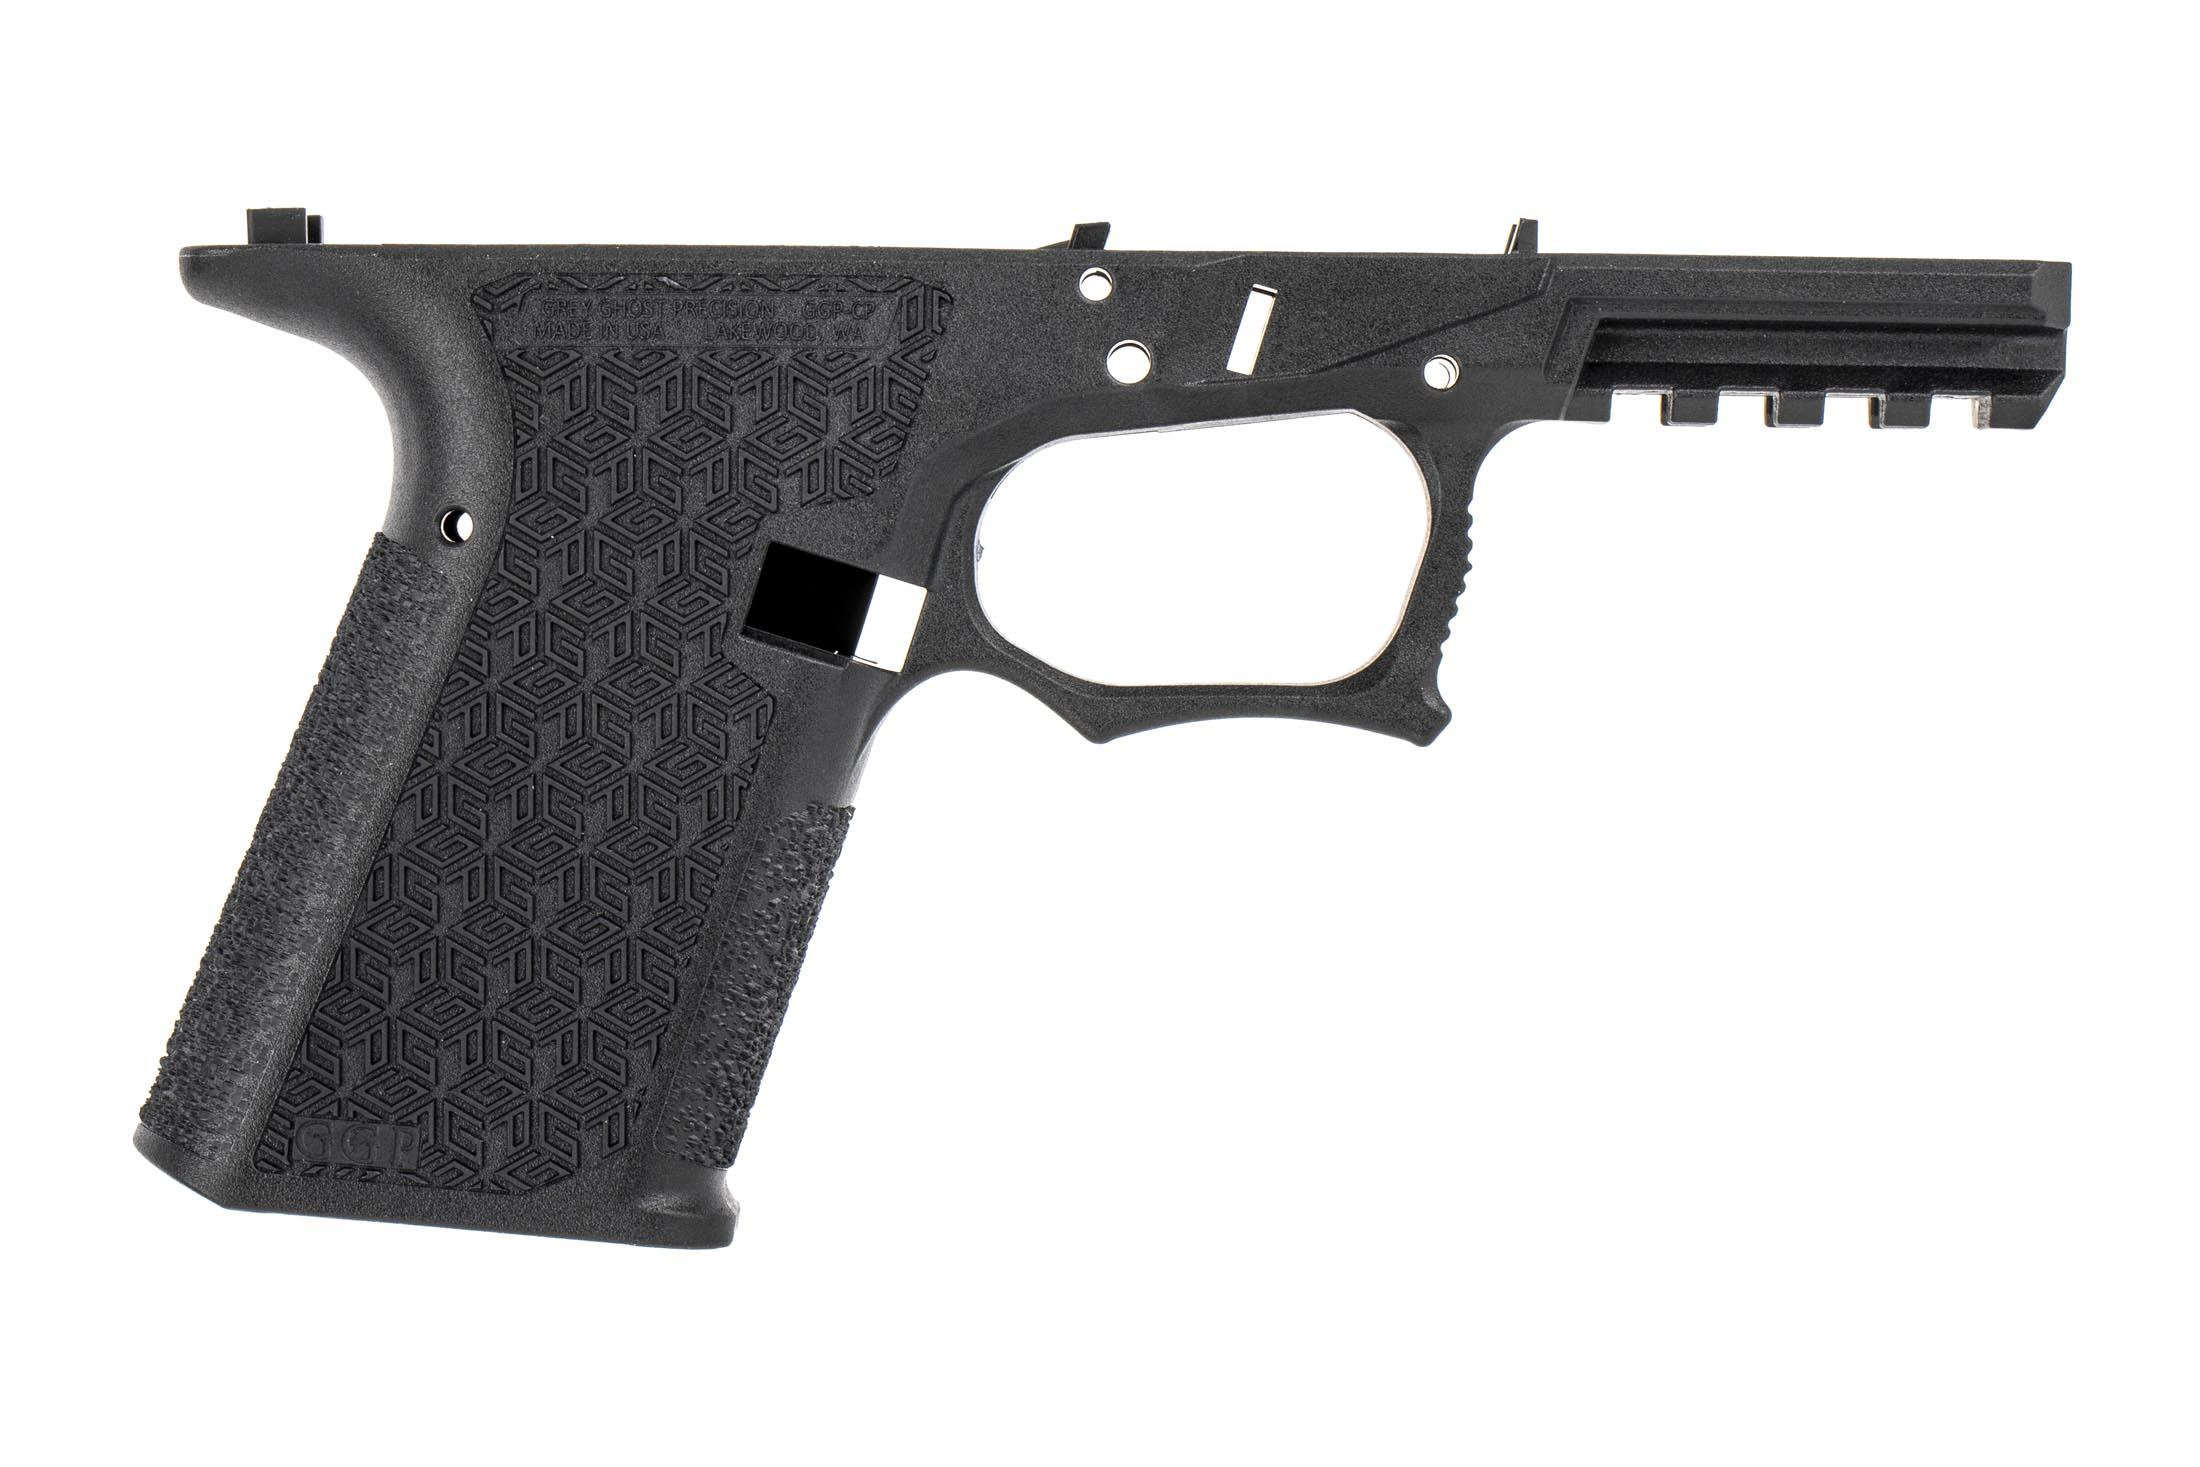 GGP black stripped Compact Combat Pistol Frame is a Gen3 compatible frame with double-undercut trigger guard